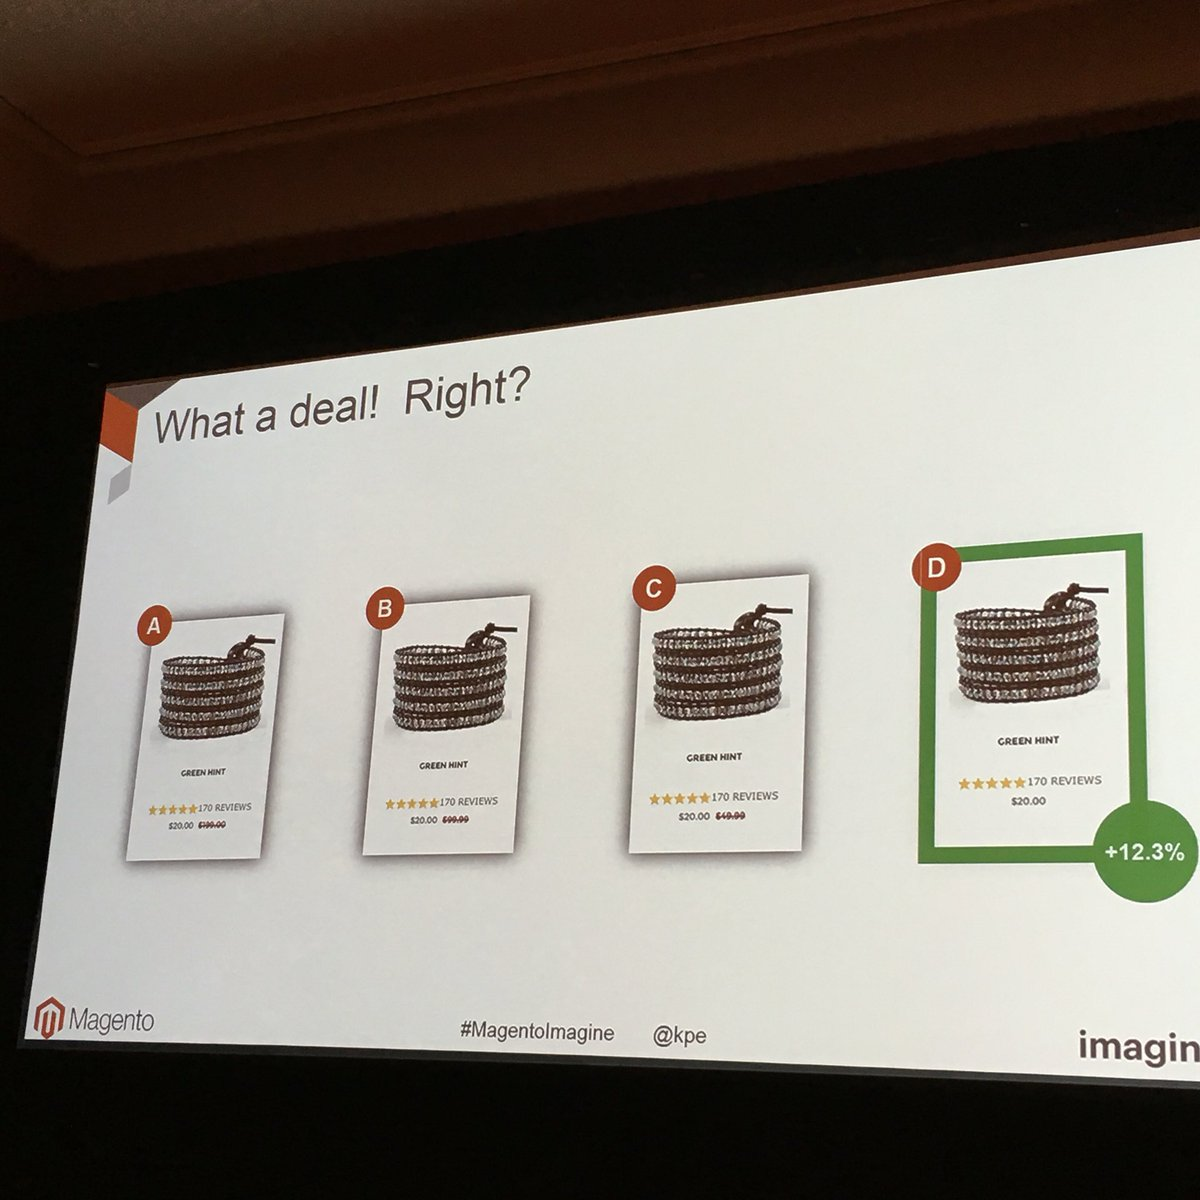 garymediaspa: Per Blue Acorn, No MSRP wins this a/b test...#MagentoImagine @kpe https://t.co/KmO569wTvF